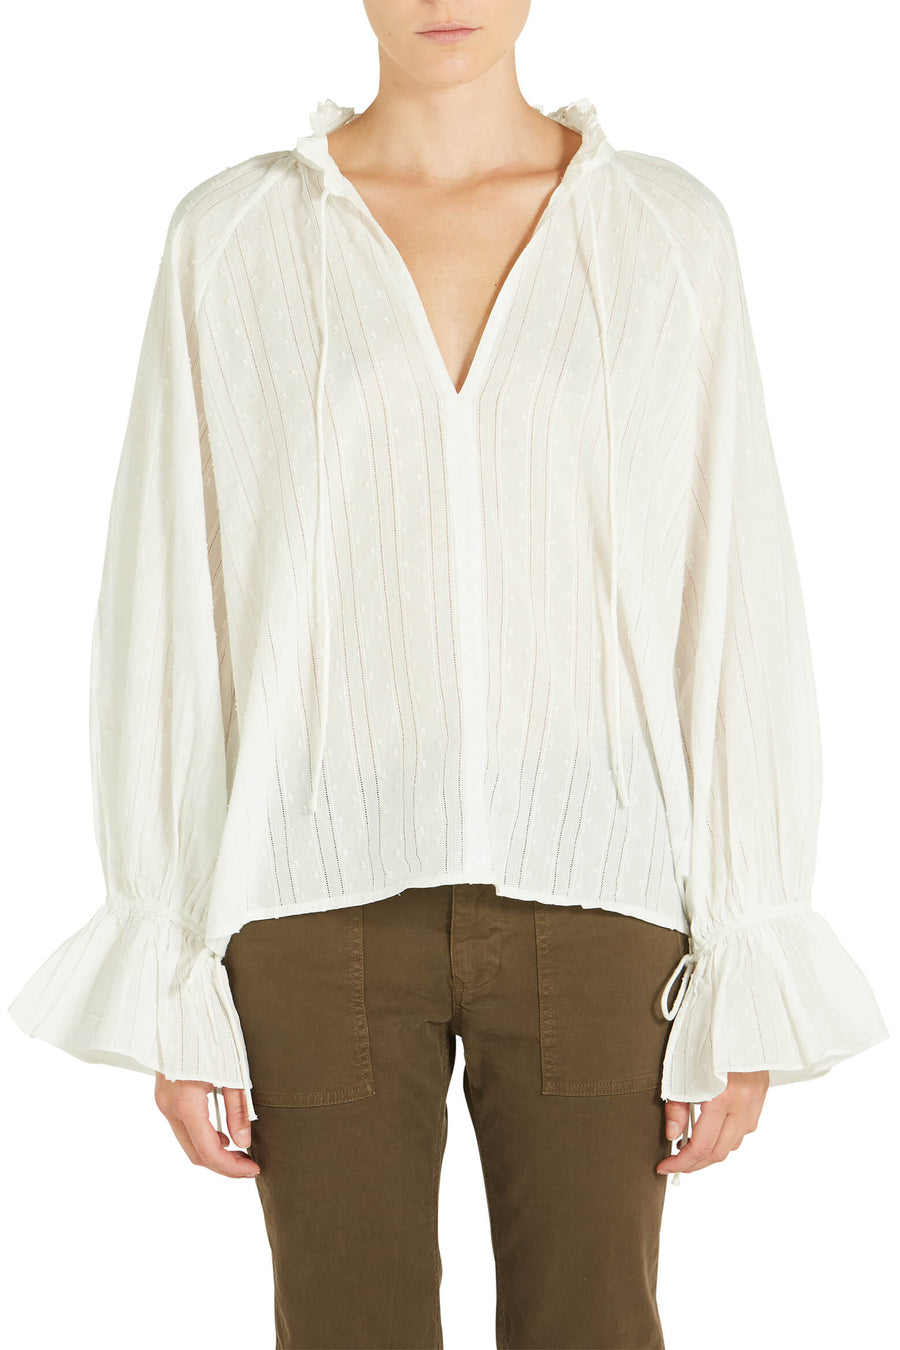 Nili Lotan Thelina Top in Ivory from The New Trend